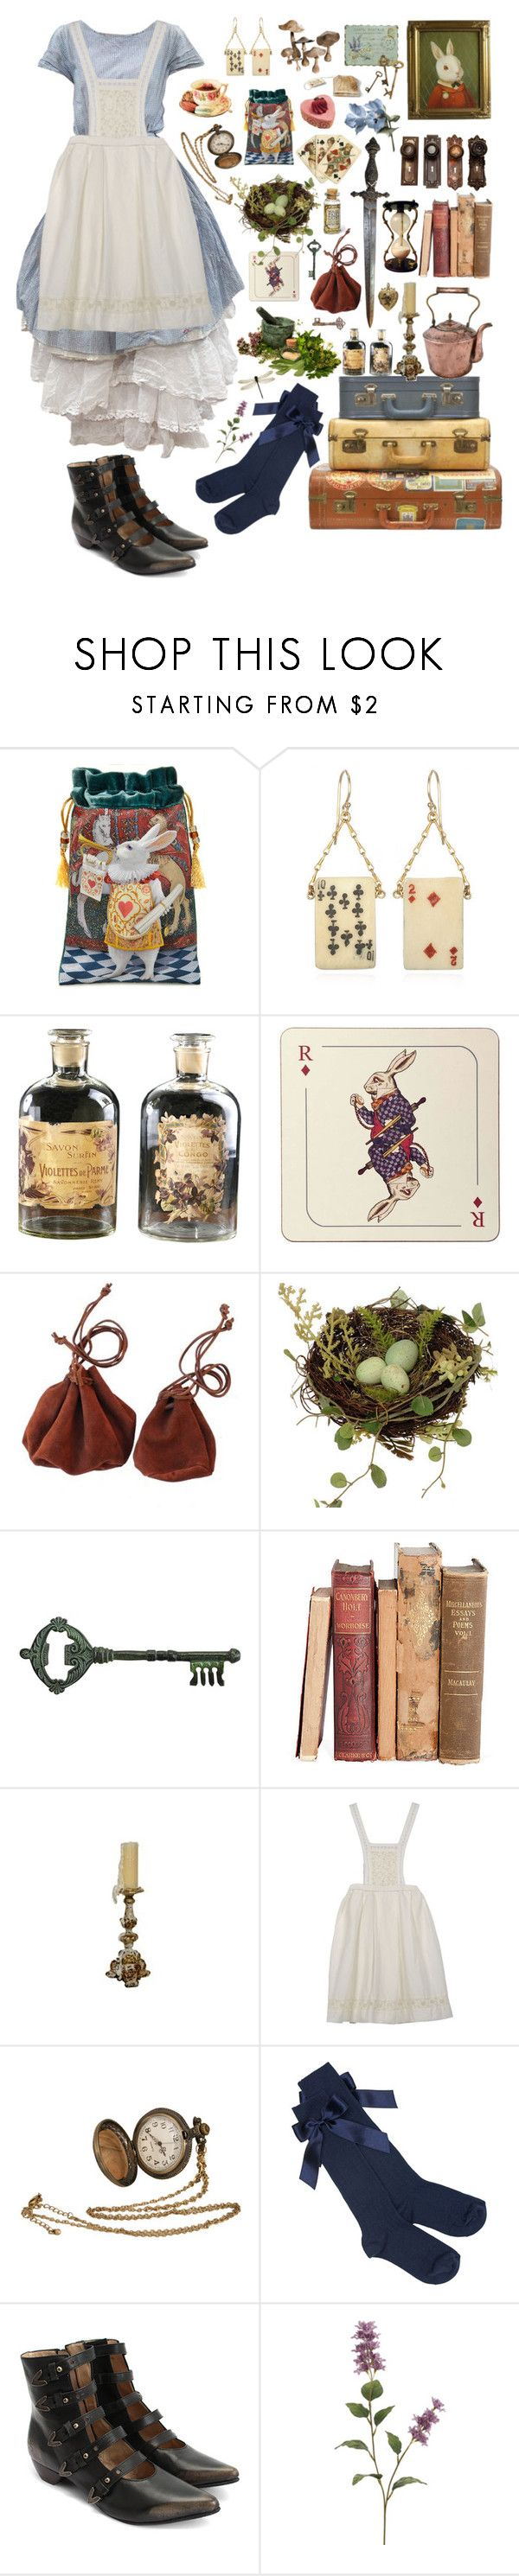 """But my darling, this is not Wonderland and you're not Alice"" by nymphlake ❤ liked on Polyvore featuring Lulu Frost, Avenida Home, Black Apple, Pier 1 Imports, Péro, John Fluevog, Alice, Wonderland and aliceinwonderland"